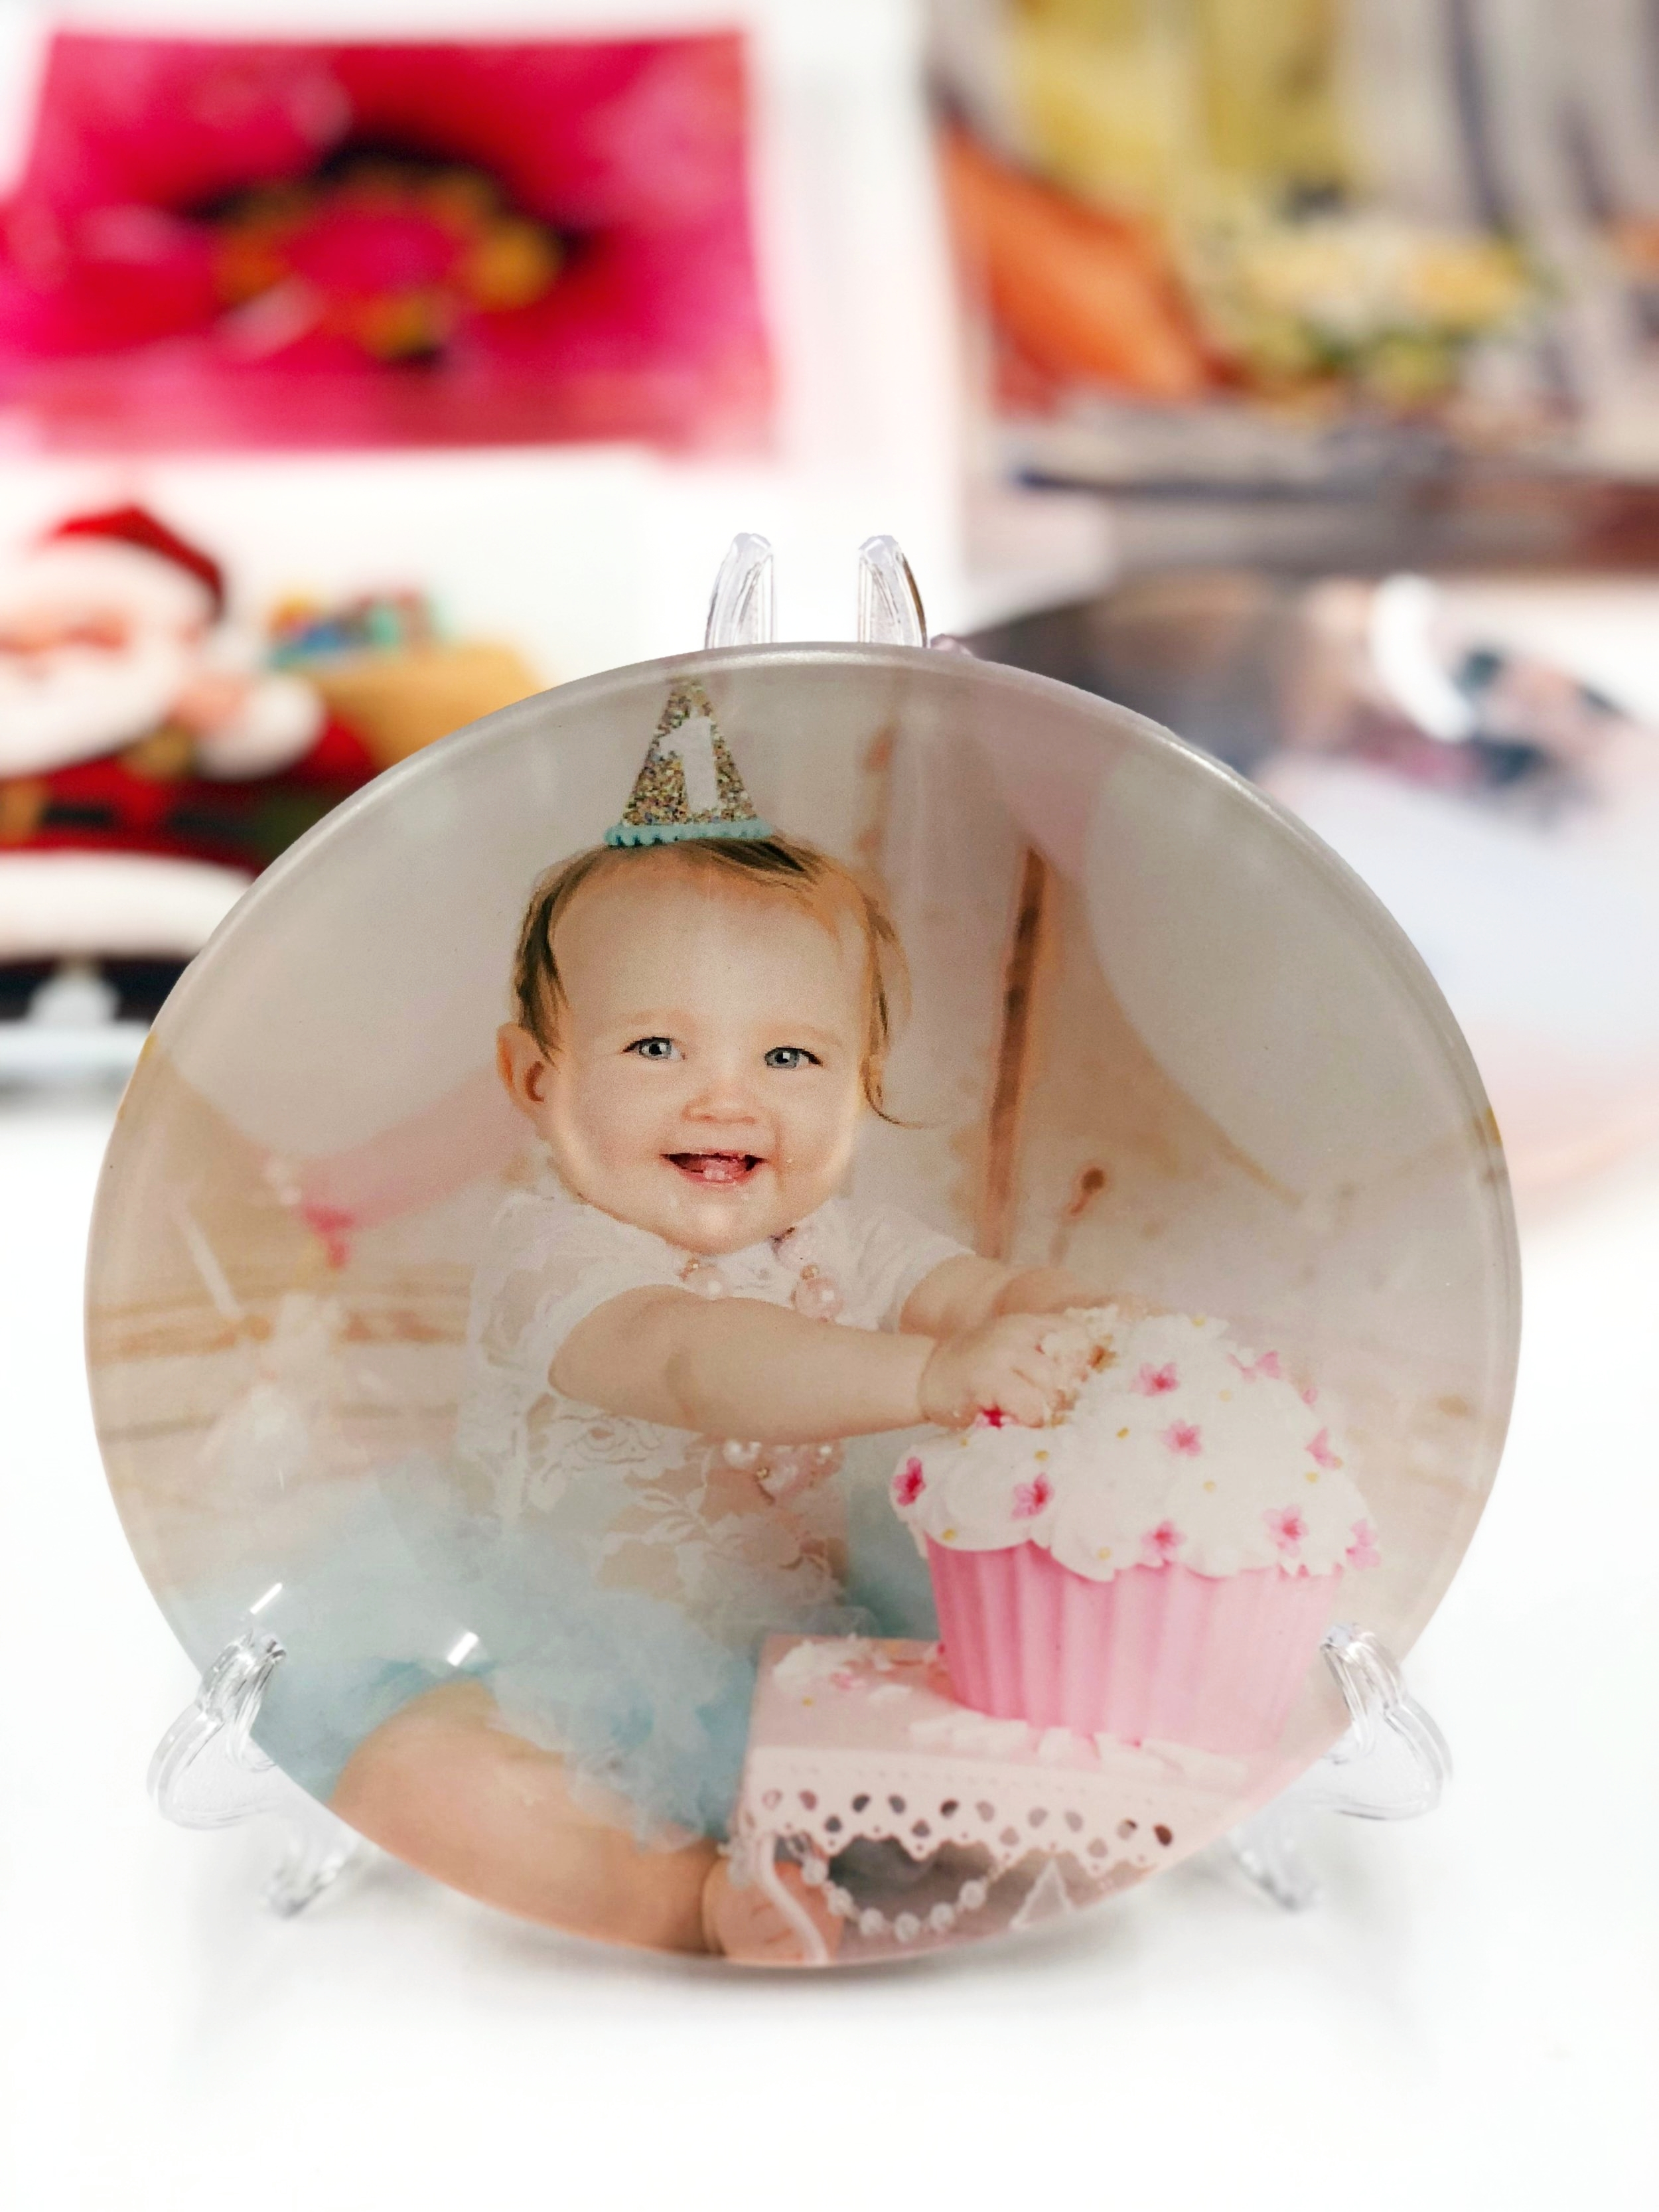 Custom Printed Glass - Let us print your memories on glass plates during the holiday season.